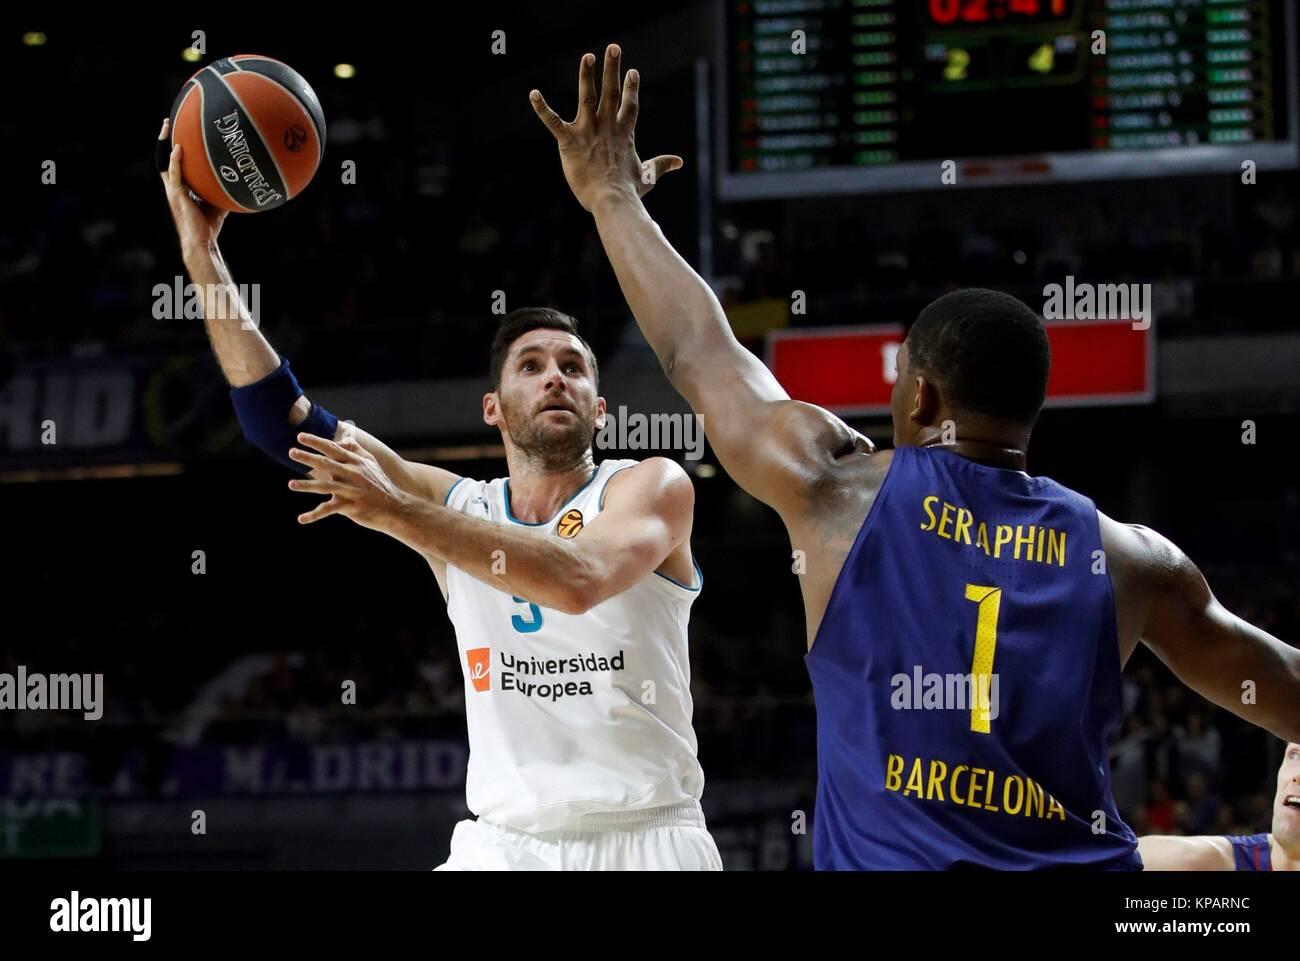 e28892468 Real Madrid s Rudy Fernandez (L) in action against FC Barcelona Lassa s  Kevin Seraphin during the Euroleague 12nd round match between Real Madrid  and FC ...